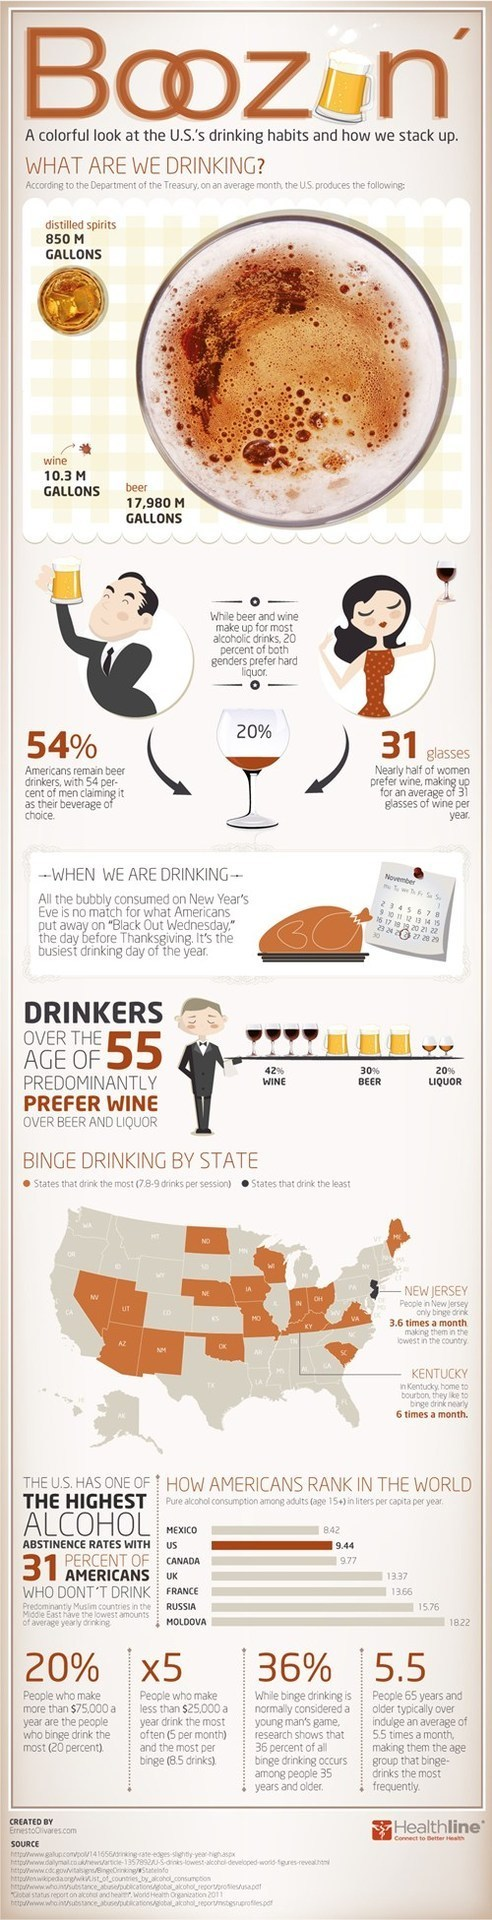 drinking habits what are we drinking utah infographic - 6813179136